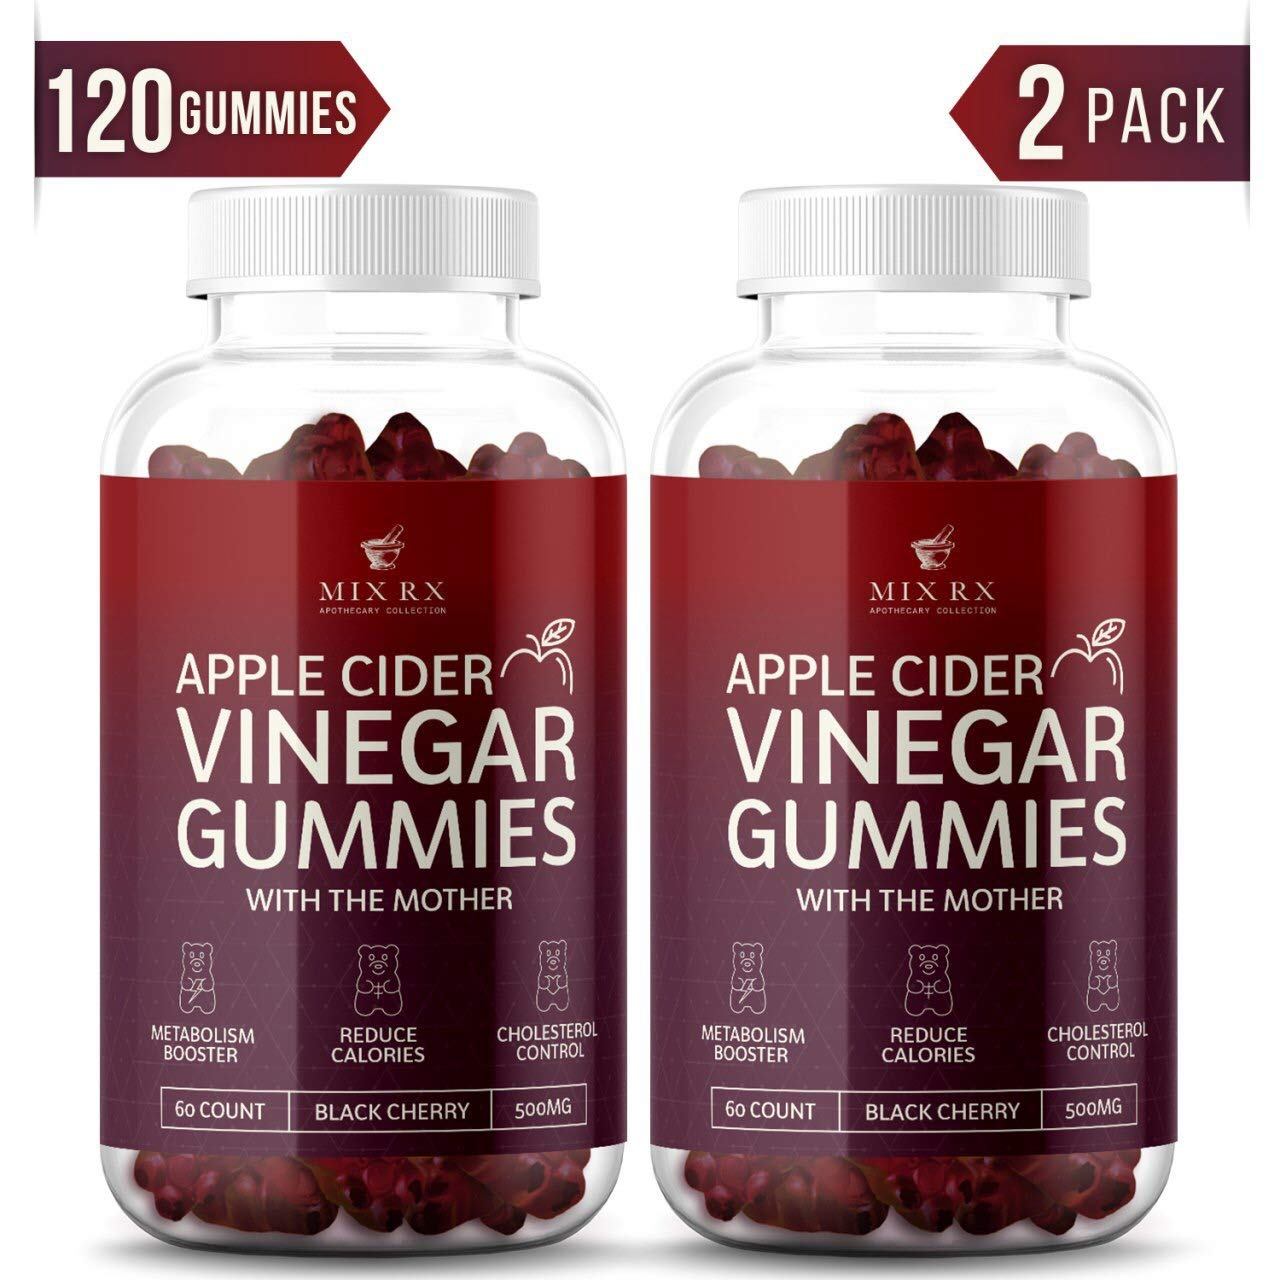 (2 Pack | 120 Gummies) Organic Apple Cider Vinegar Gummies with The Mother - Gummy Alternative to Apple Cider Vinegar Capsules, Pills, ACV Tablets with Delicious Black Cherry Flavor by Mix Rx